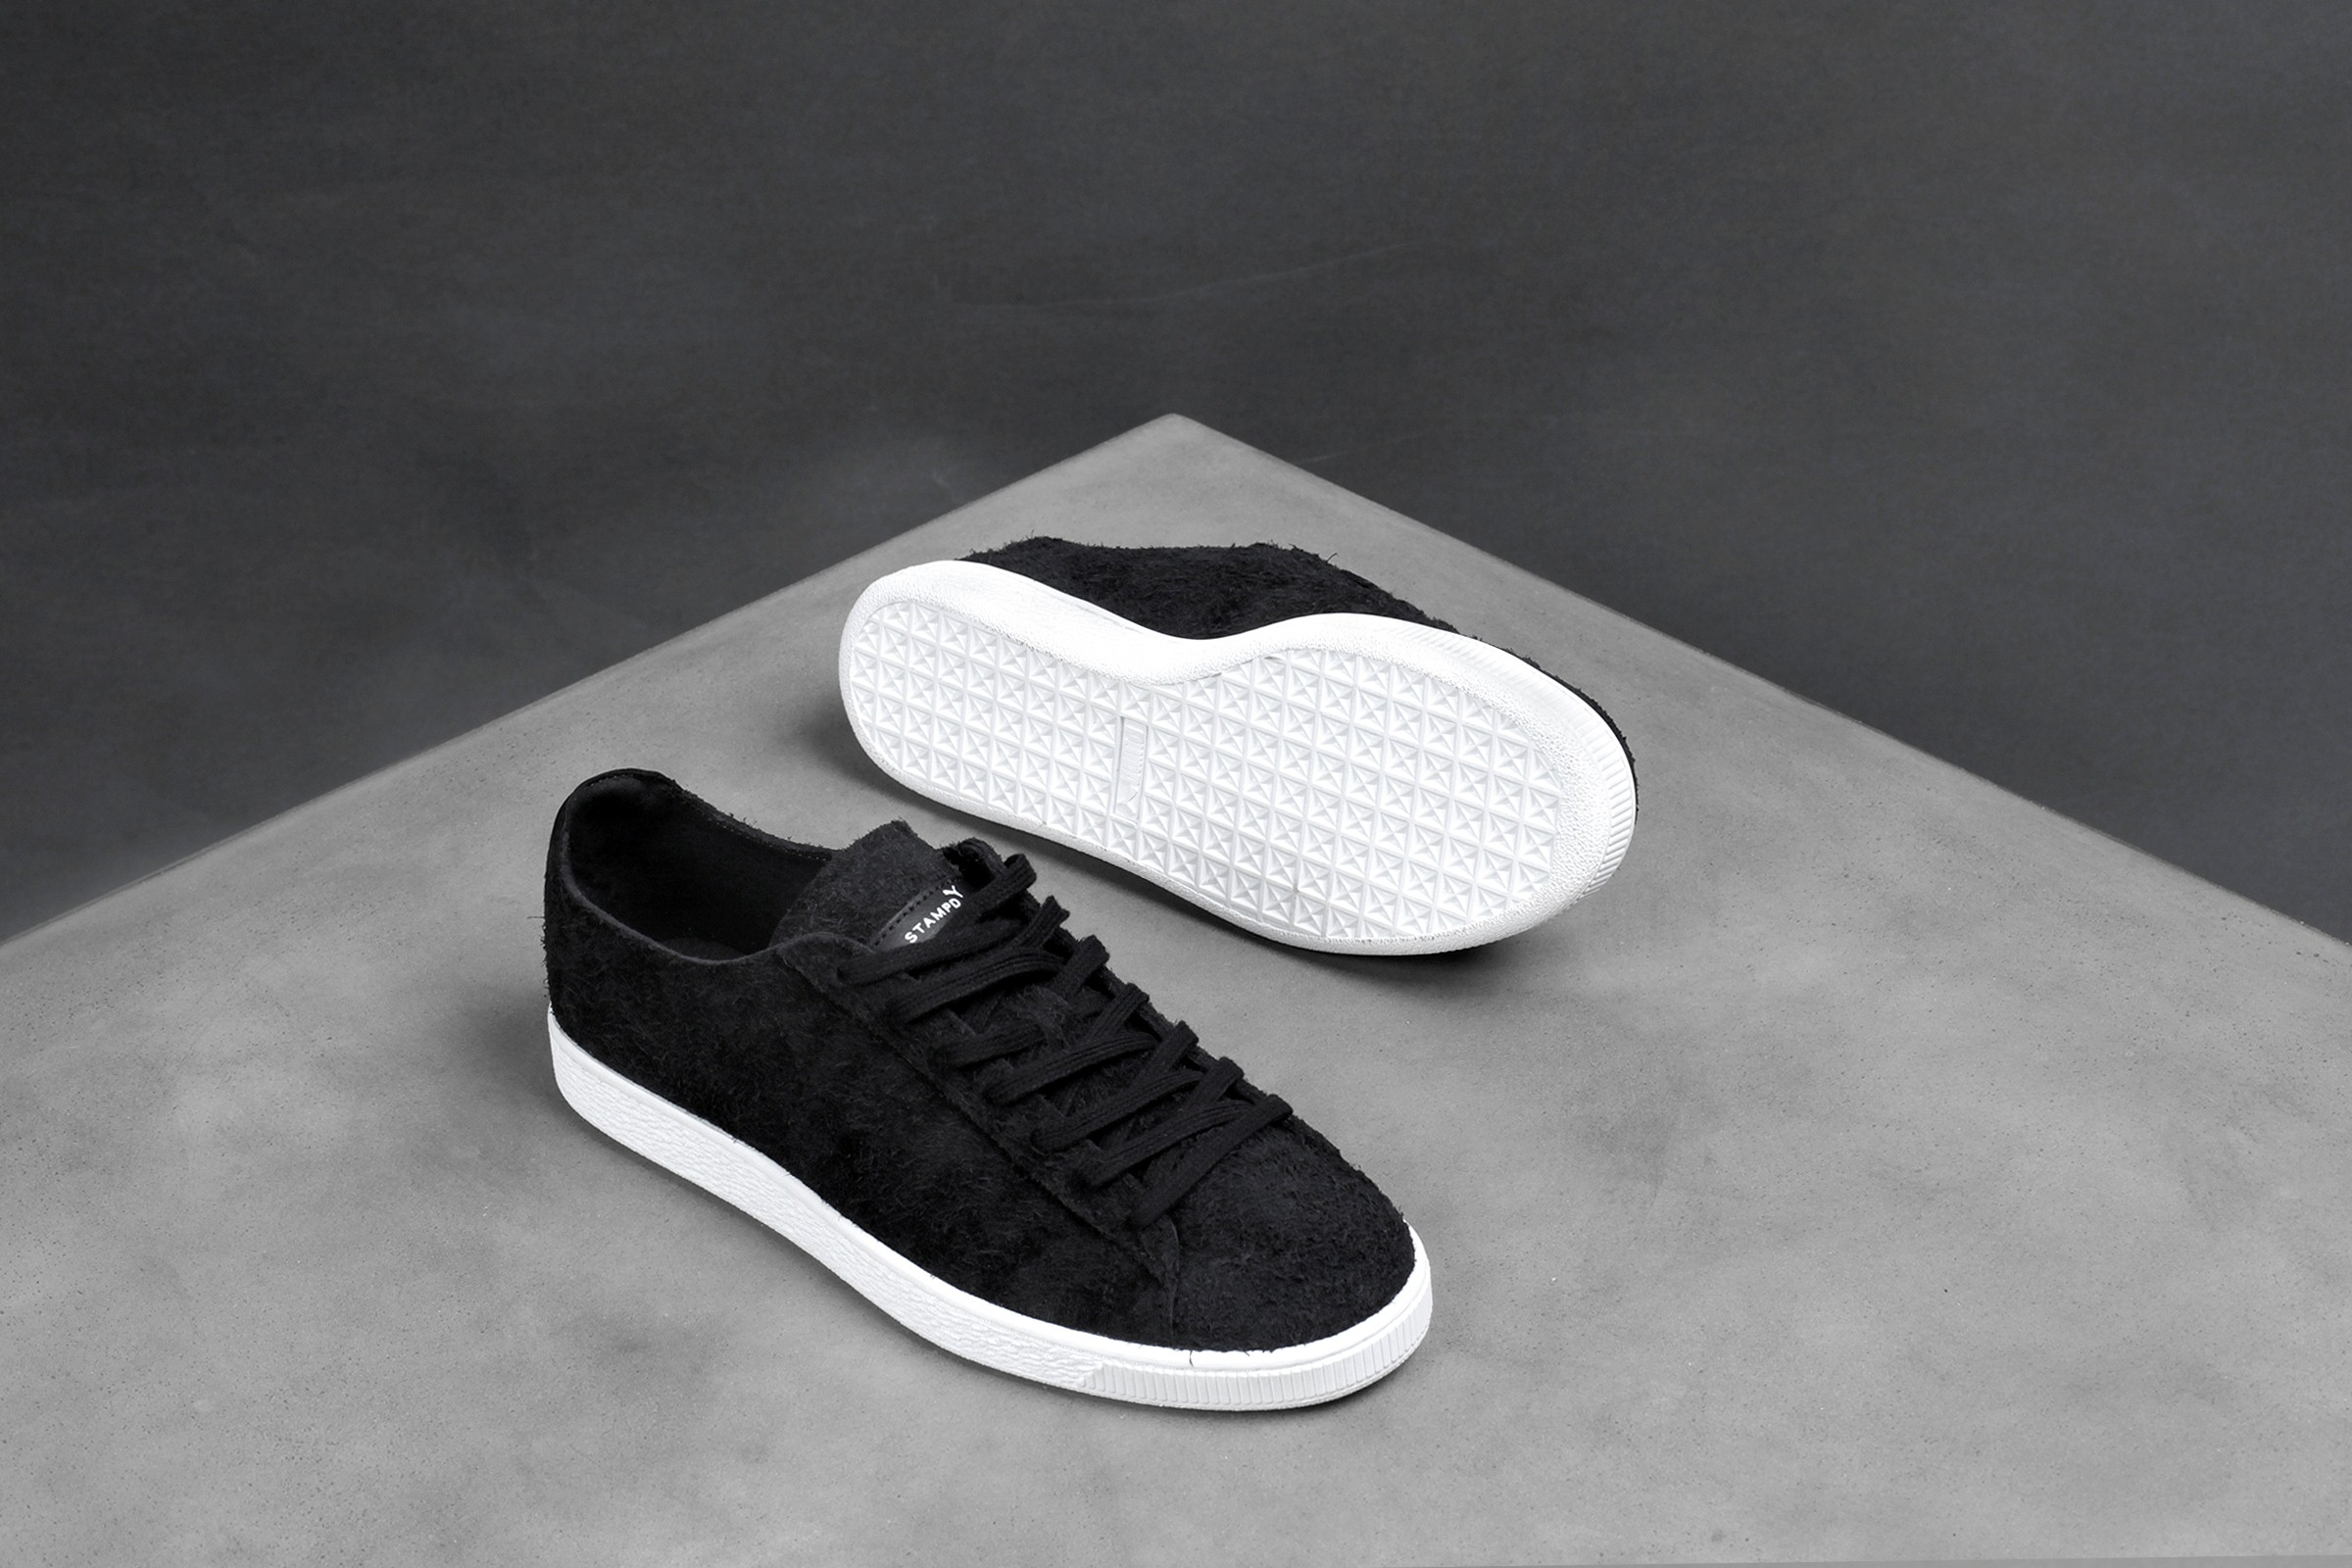 STAMPD x Puma States Group Black